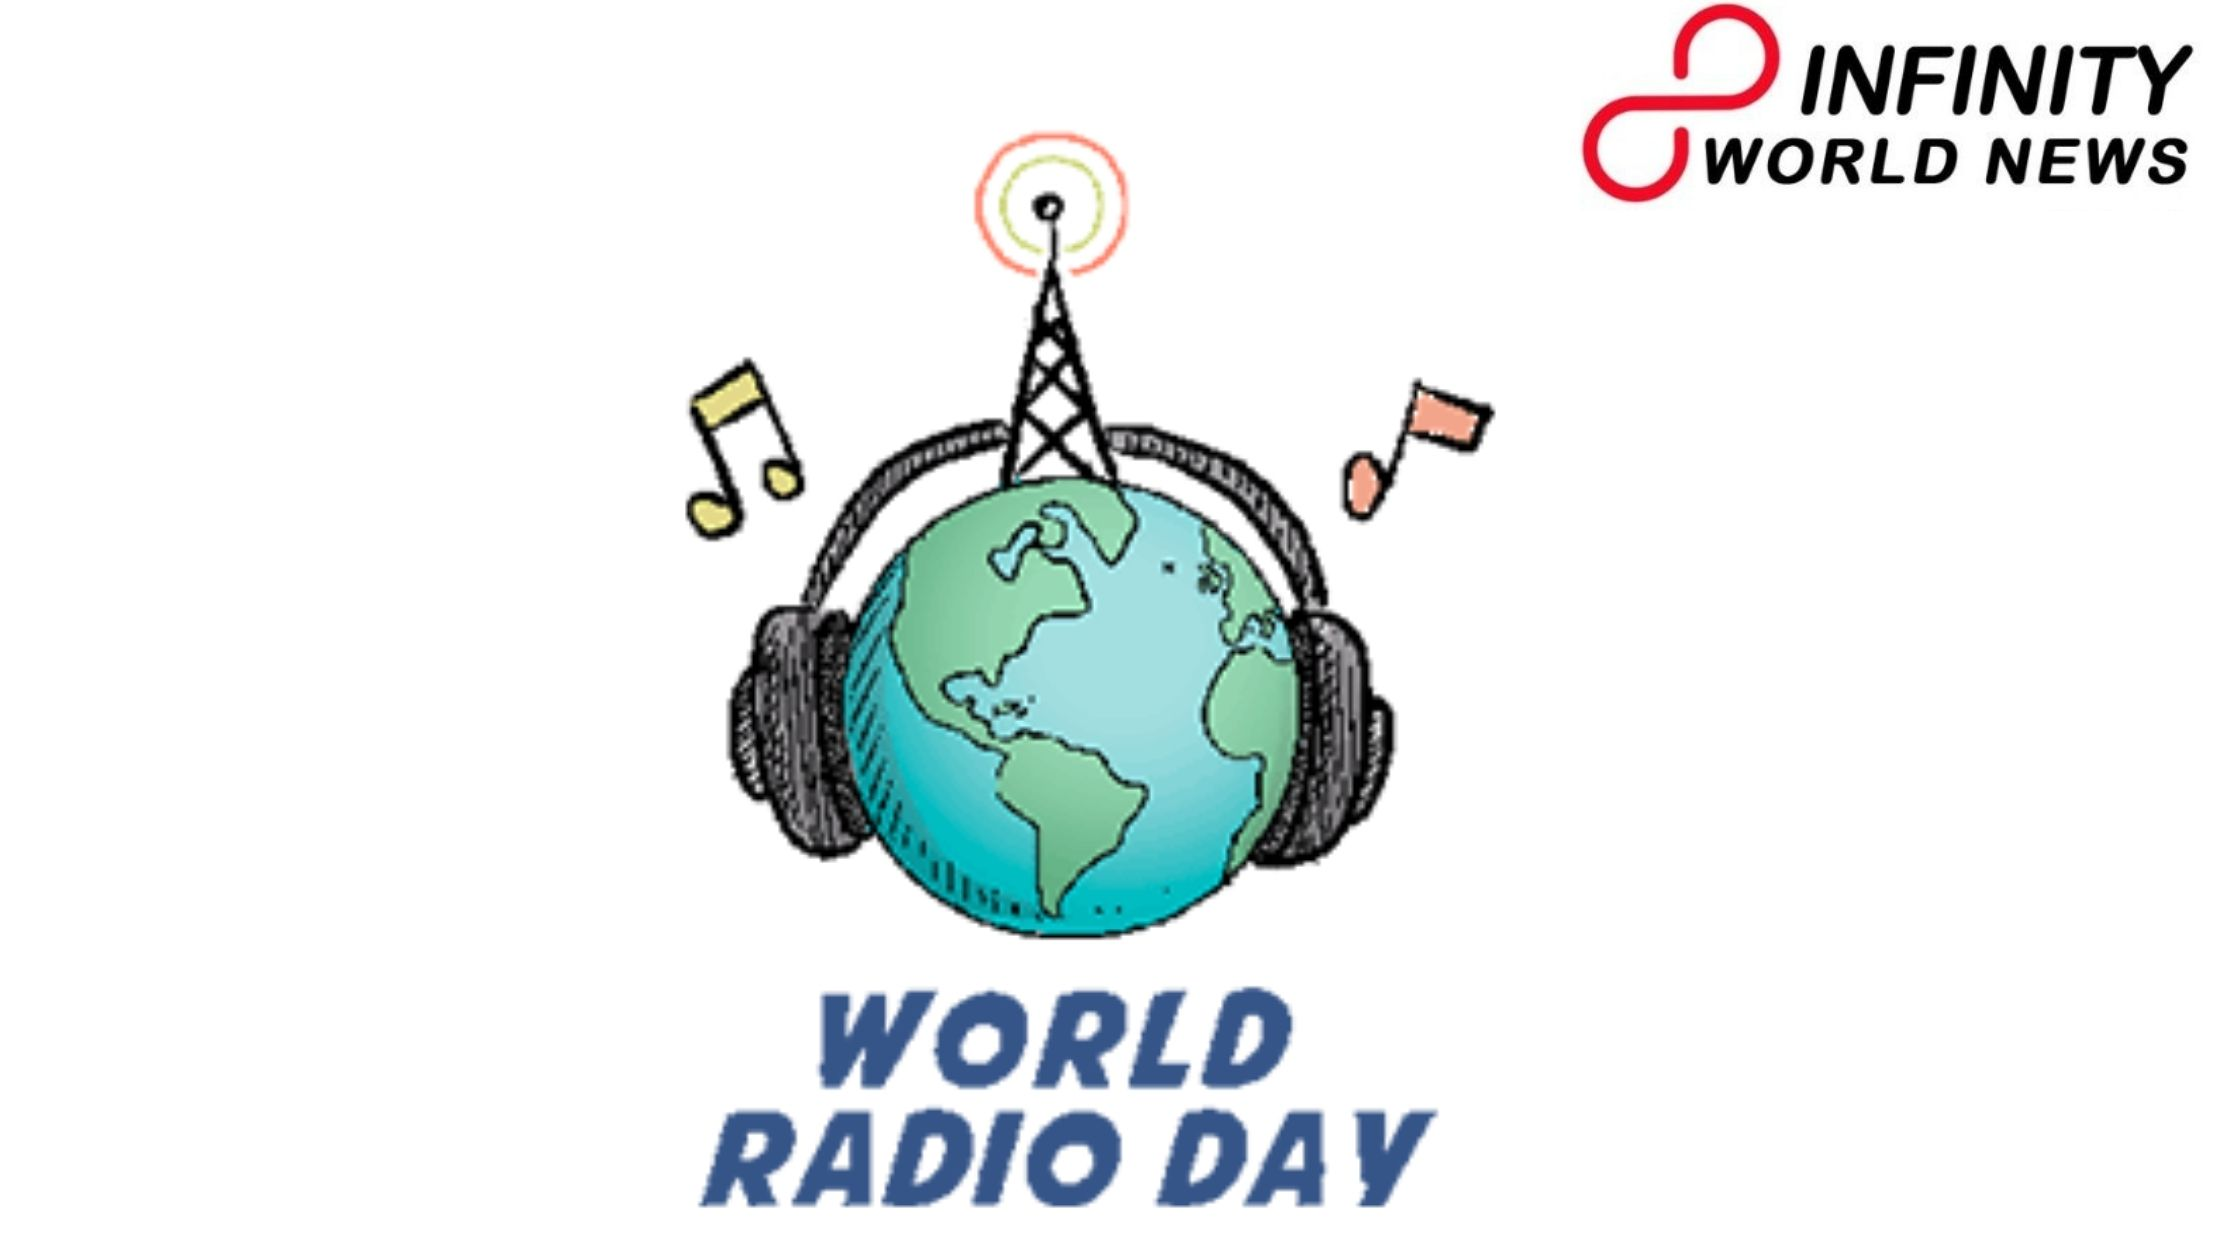 The importance and history of World Radio Day